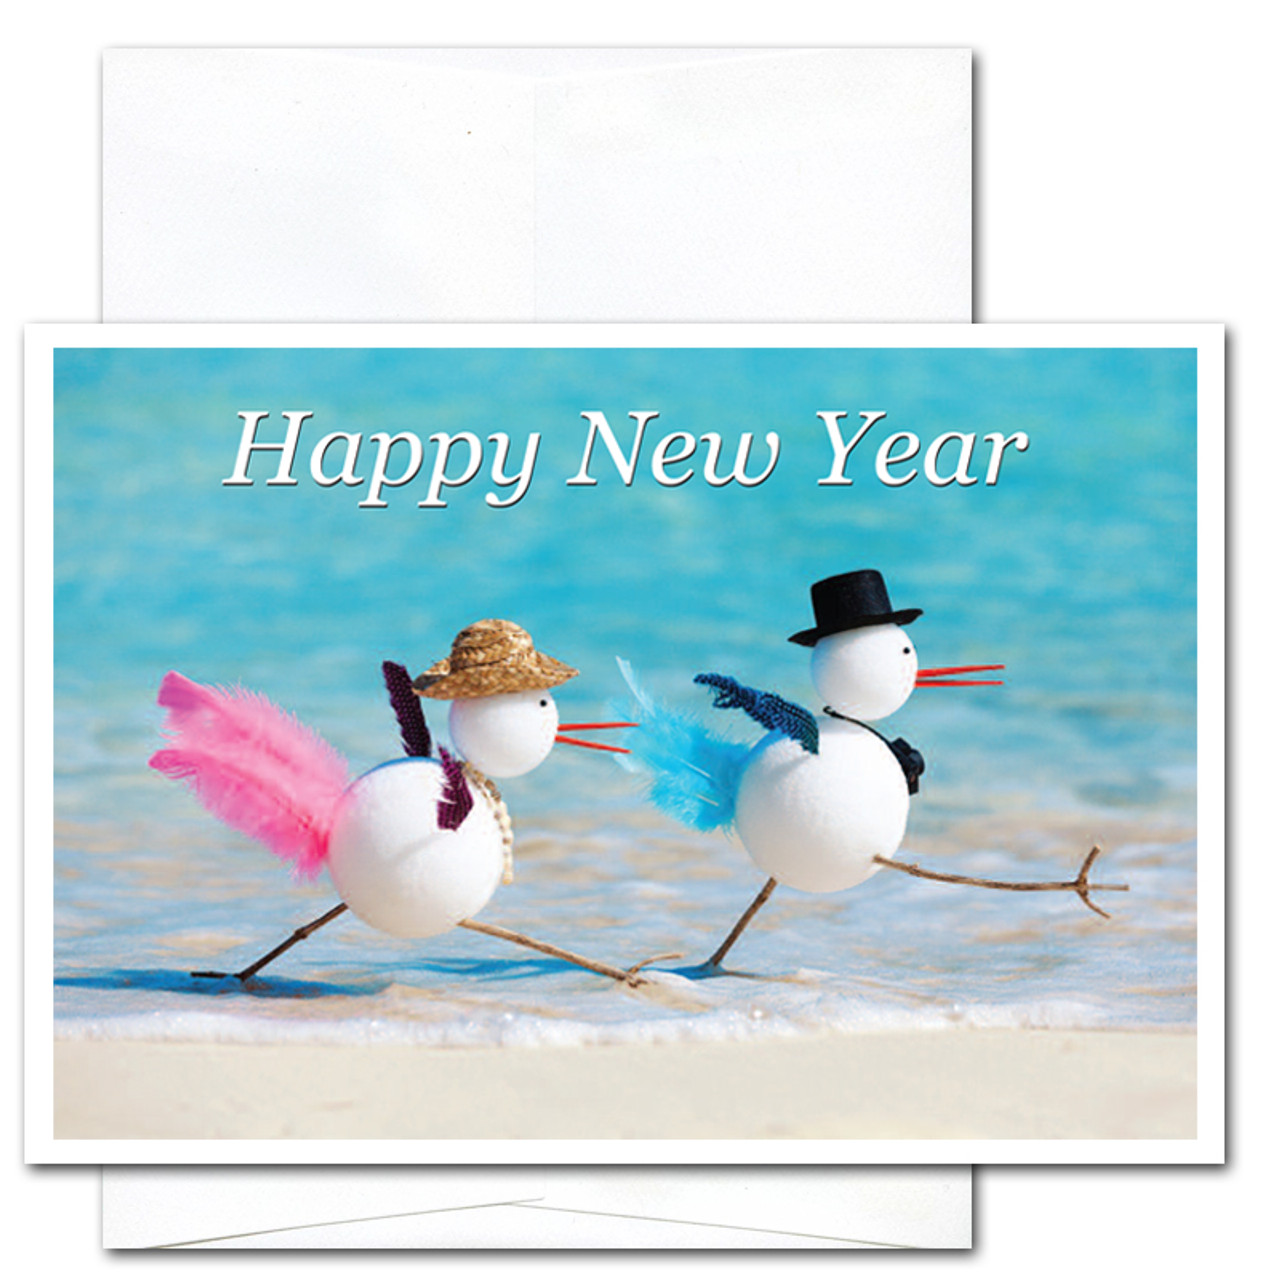 snowbirds new year card cover shows two snowbirds walking along the beach and the words